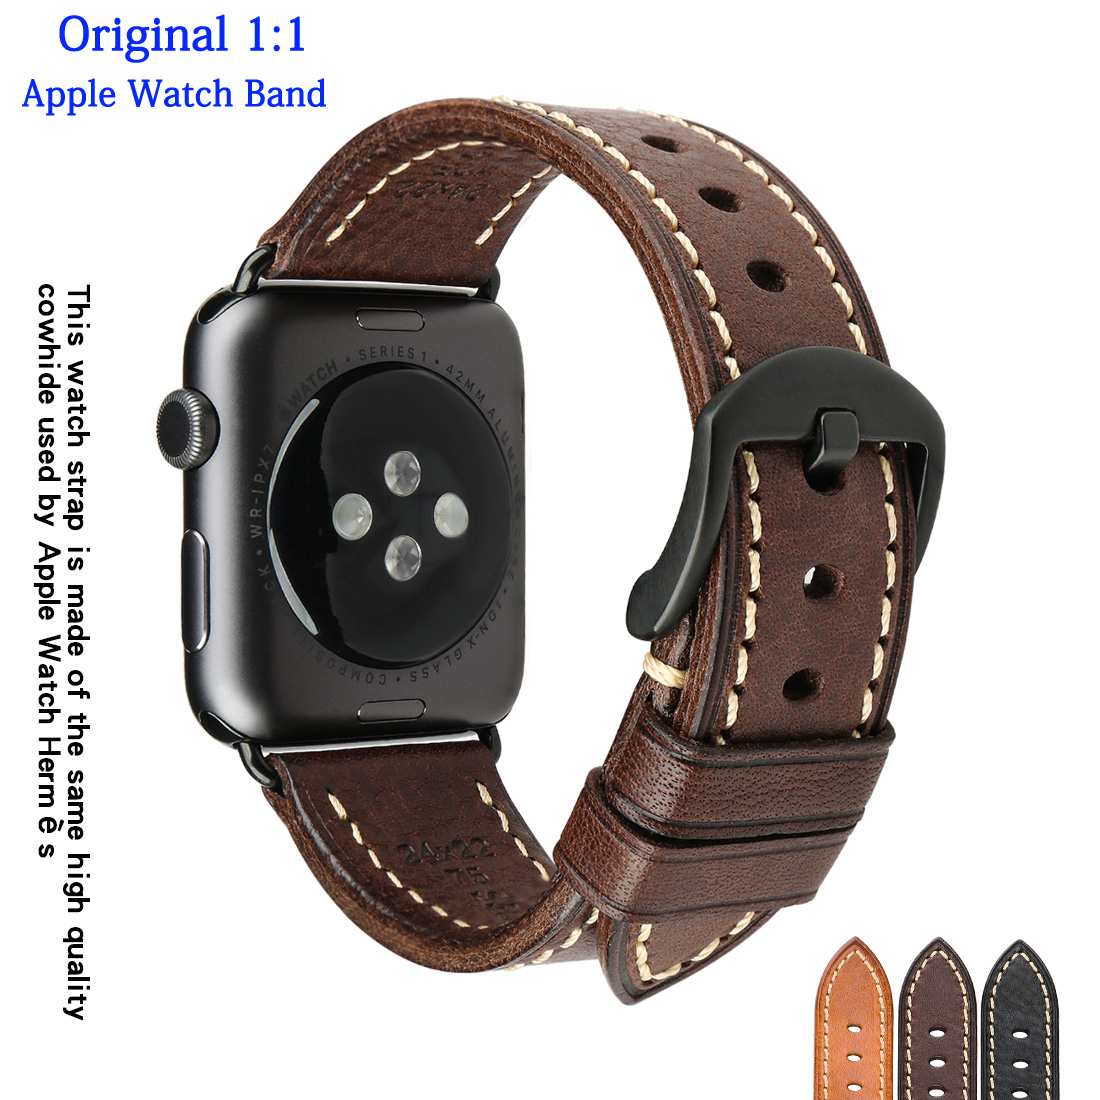 Luxury Original Apple Watch Band For iWatch 6/SE/5/4/3 44mm 40mm 42mm 38mm Handmade Italian Real Leather Apple Watch Strap